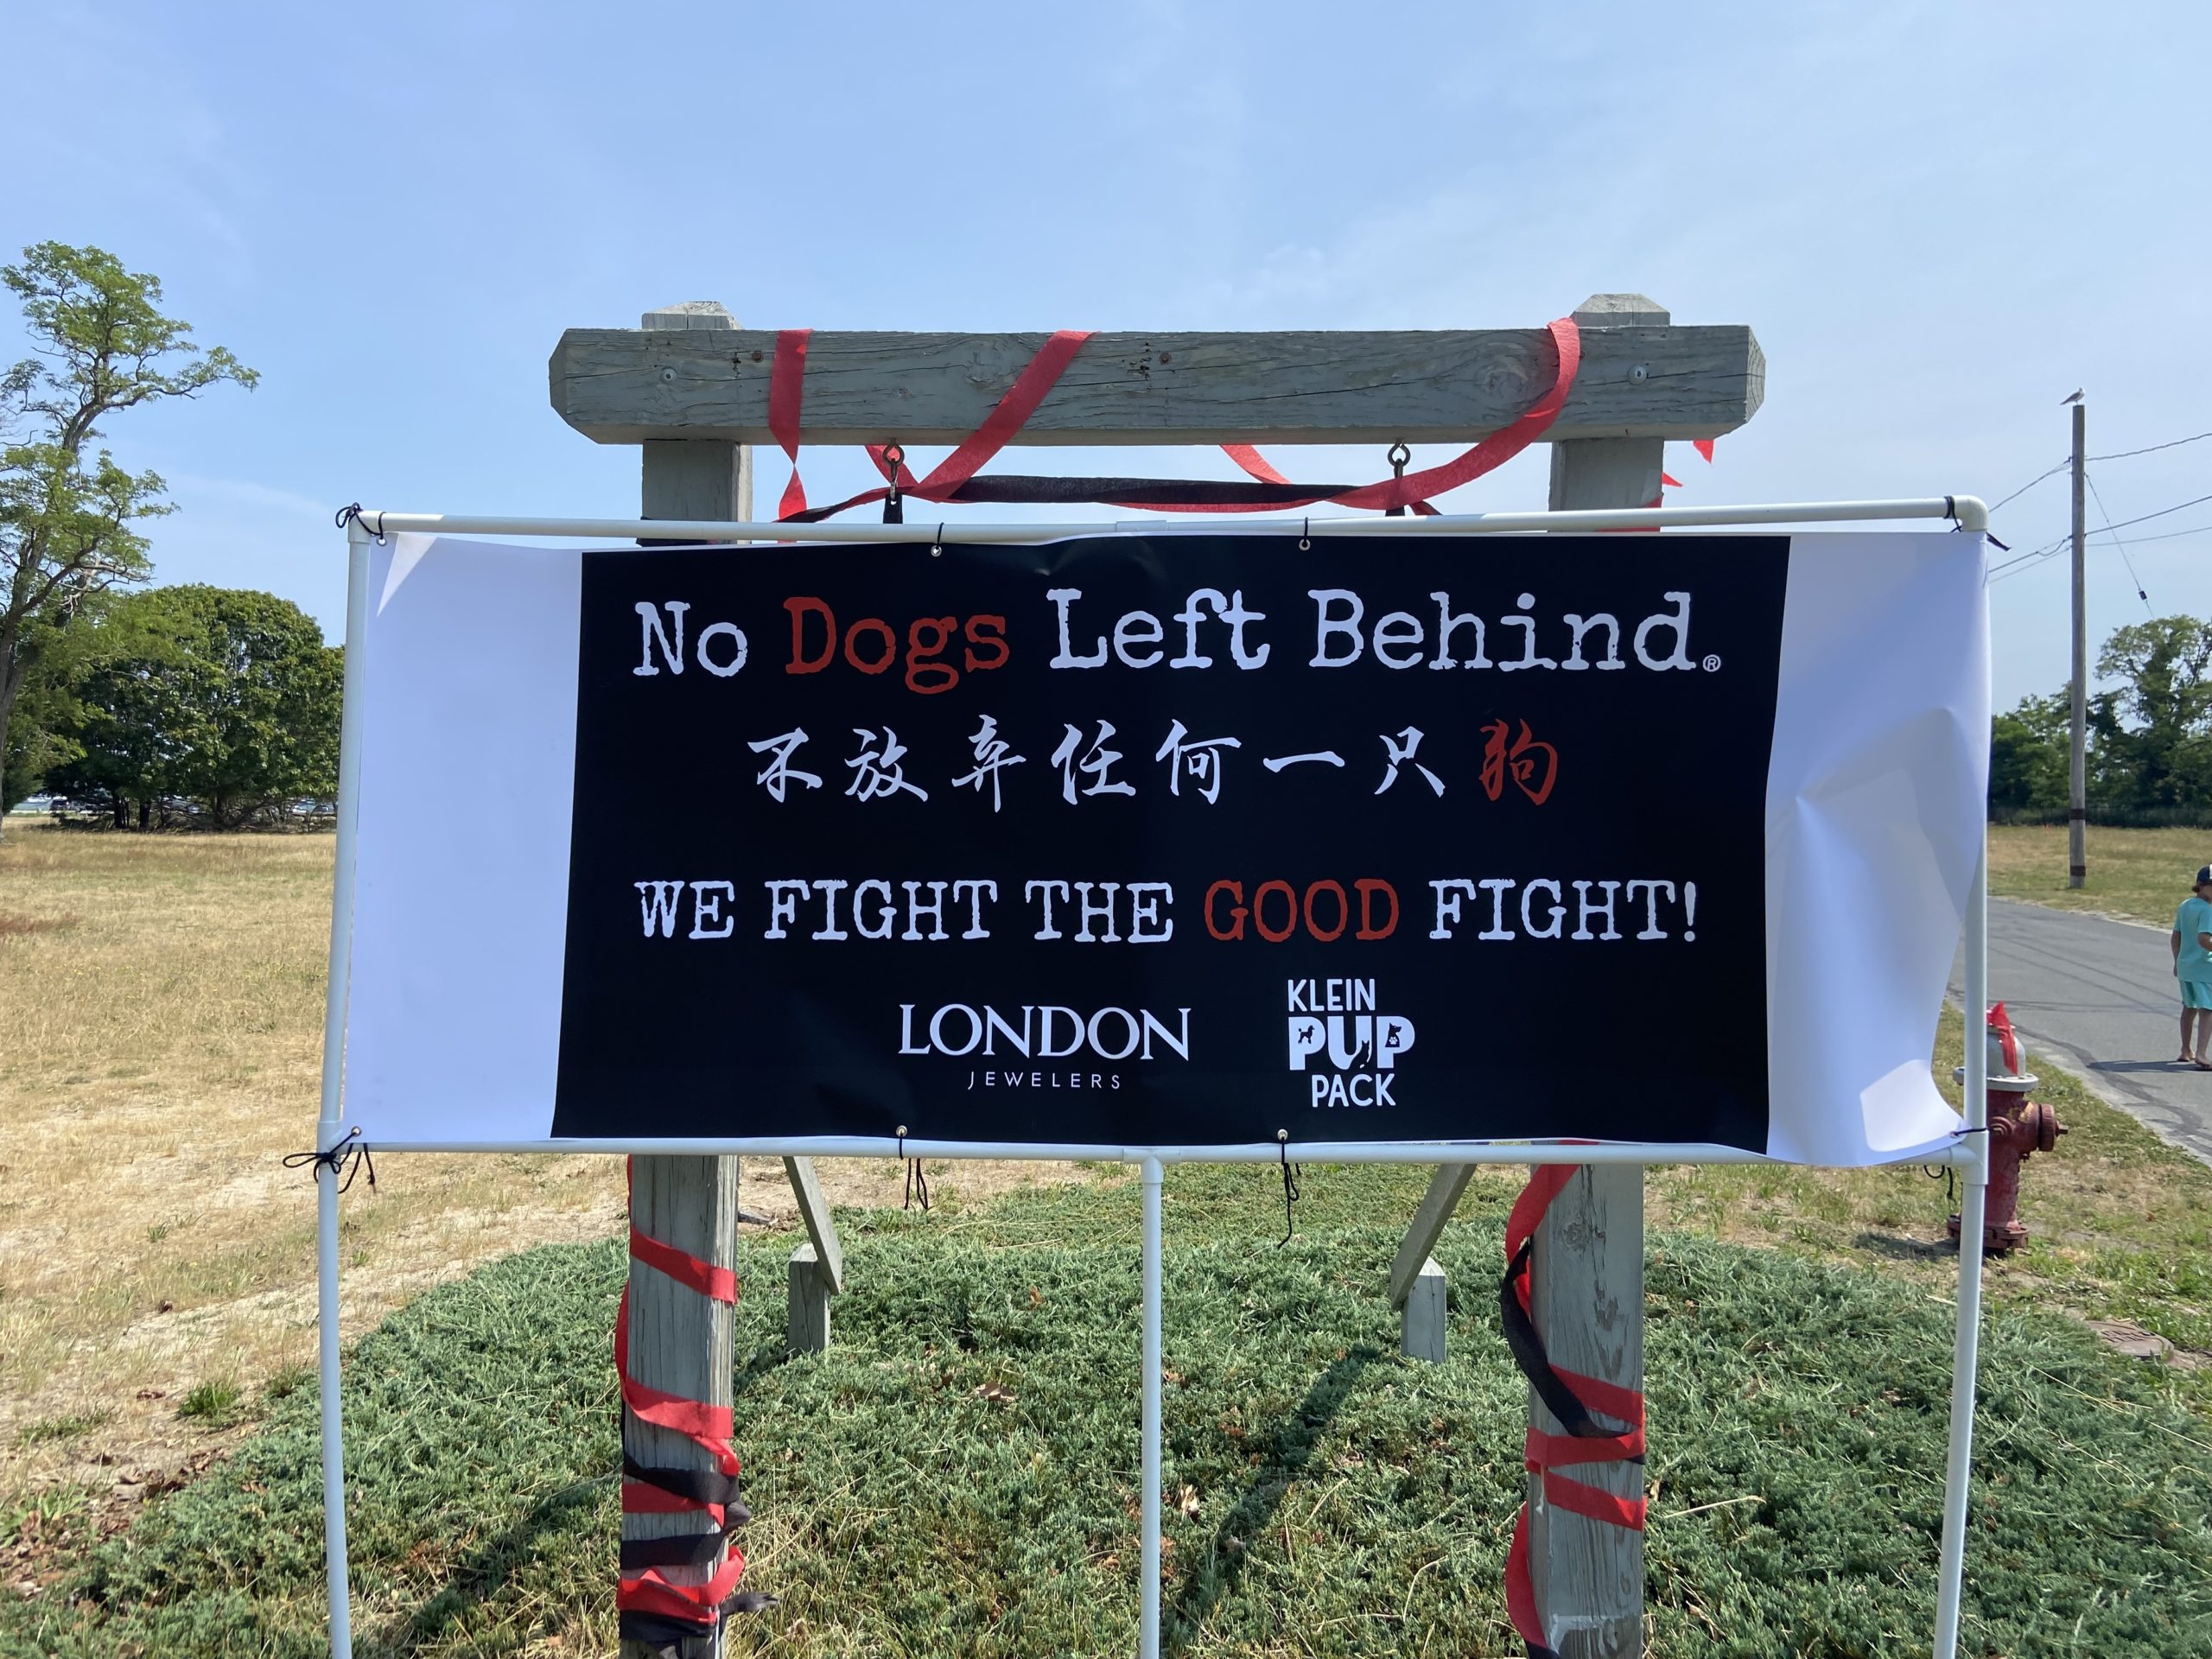 Nearly 100 people registered for Saturday's walk hosted by No Dogs Left Behind